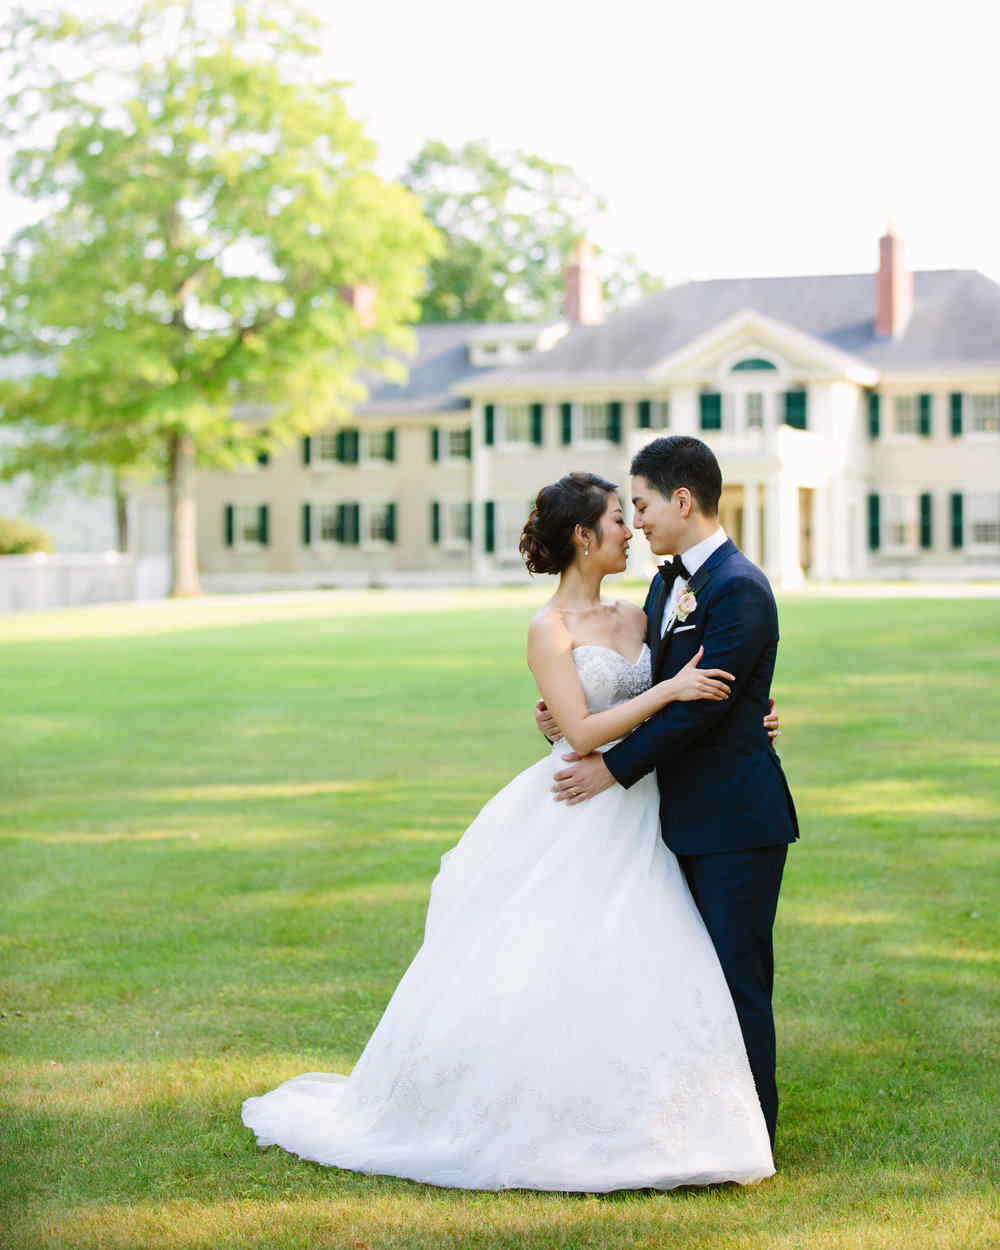 hildene_wedding_57.jpg